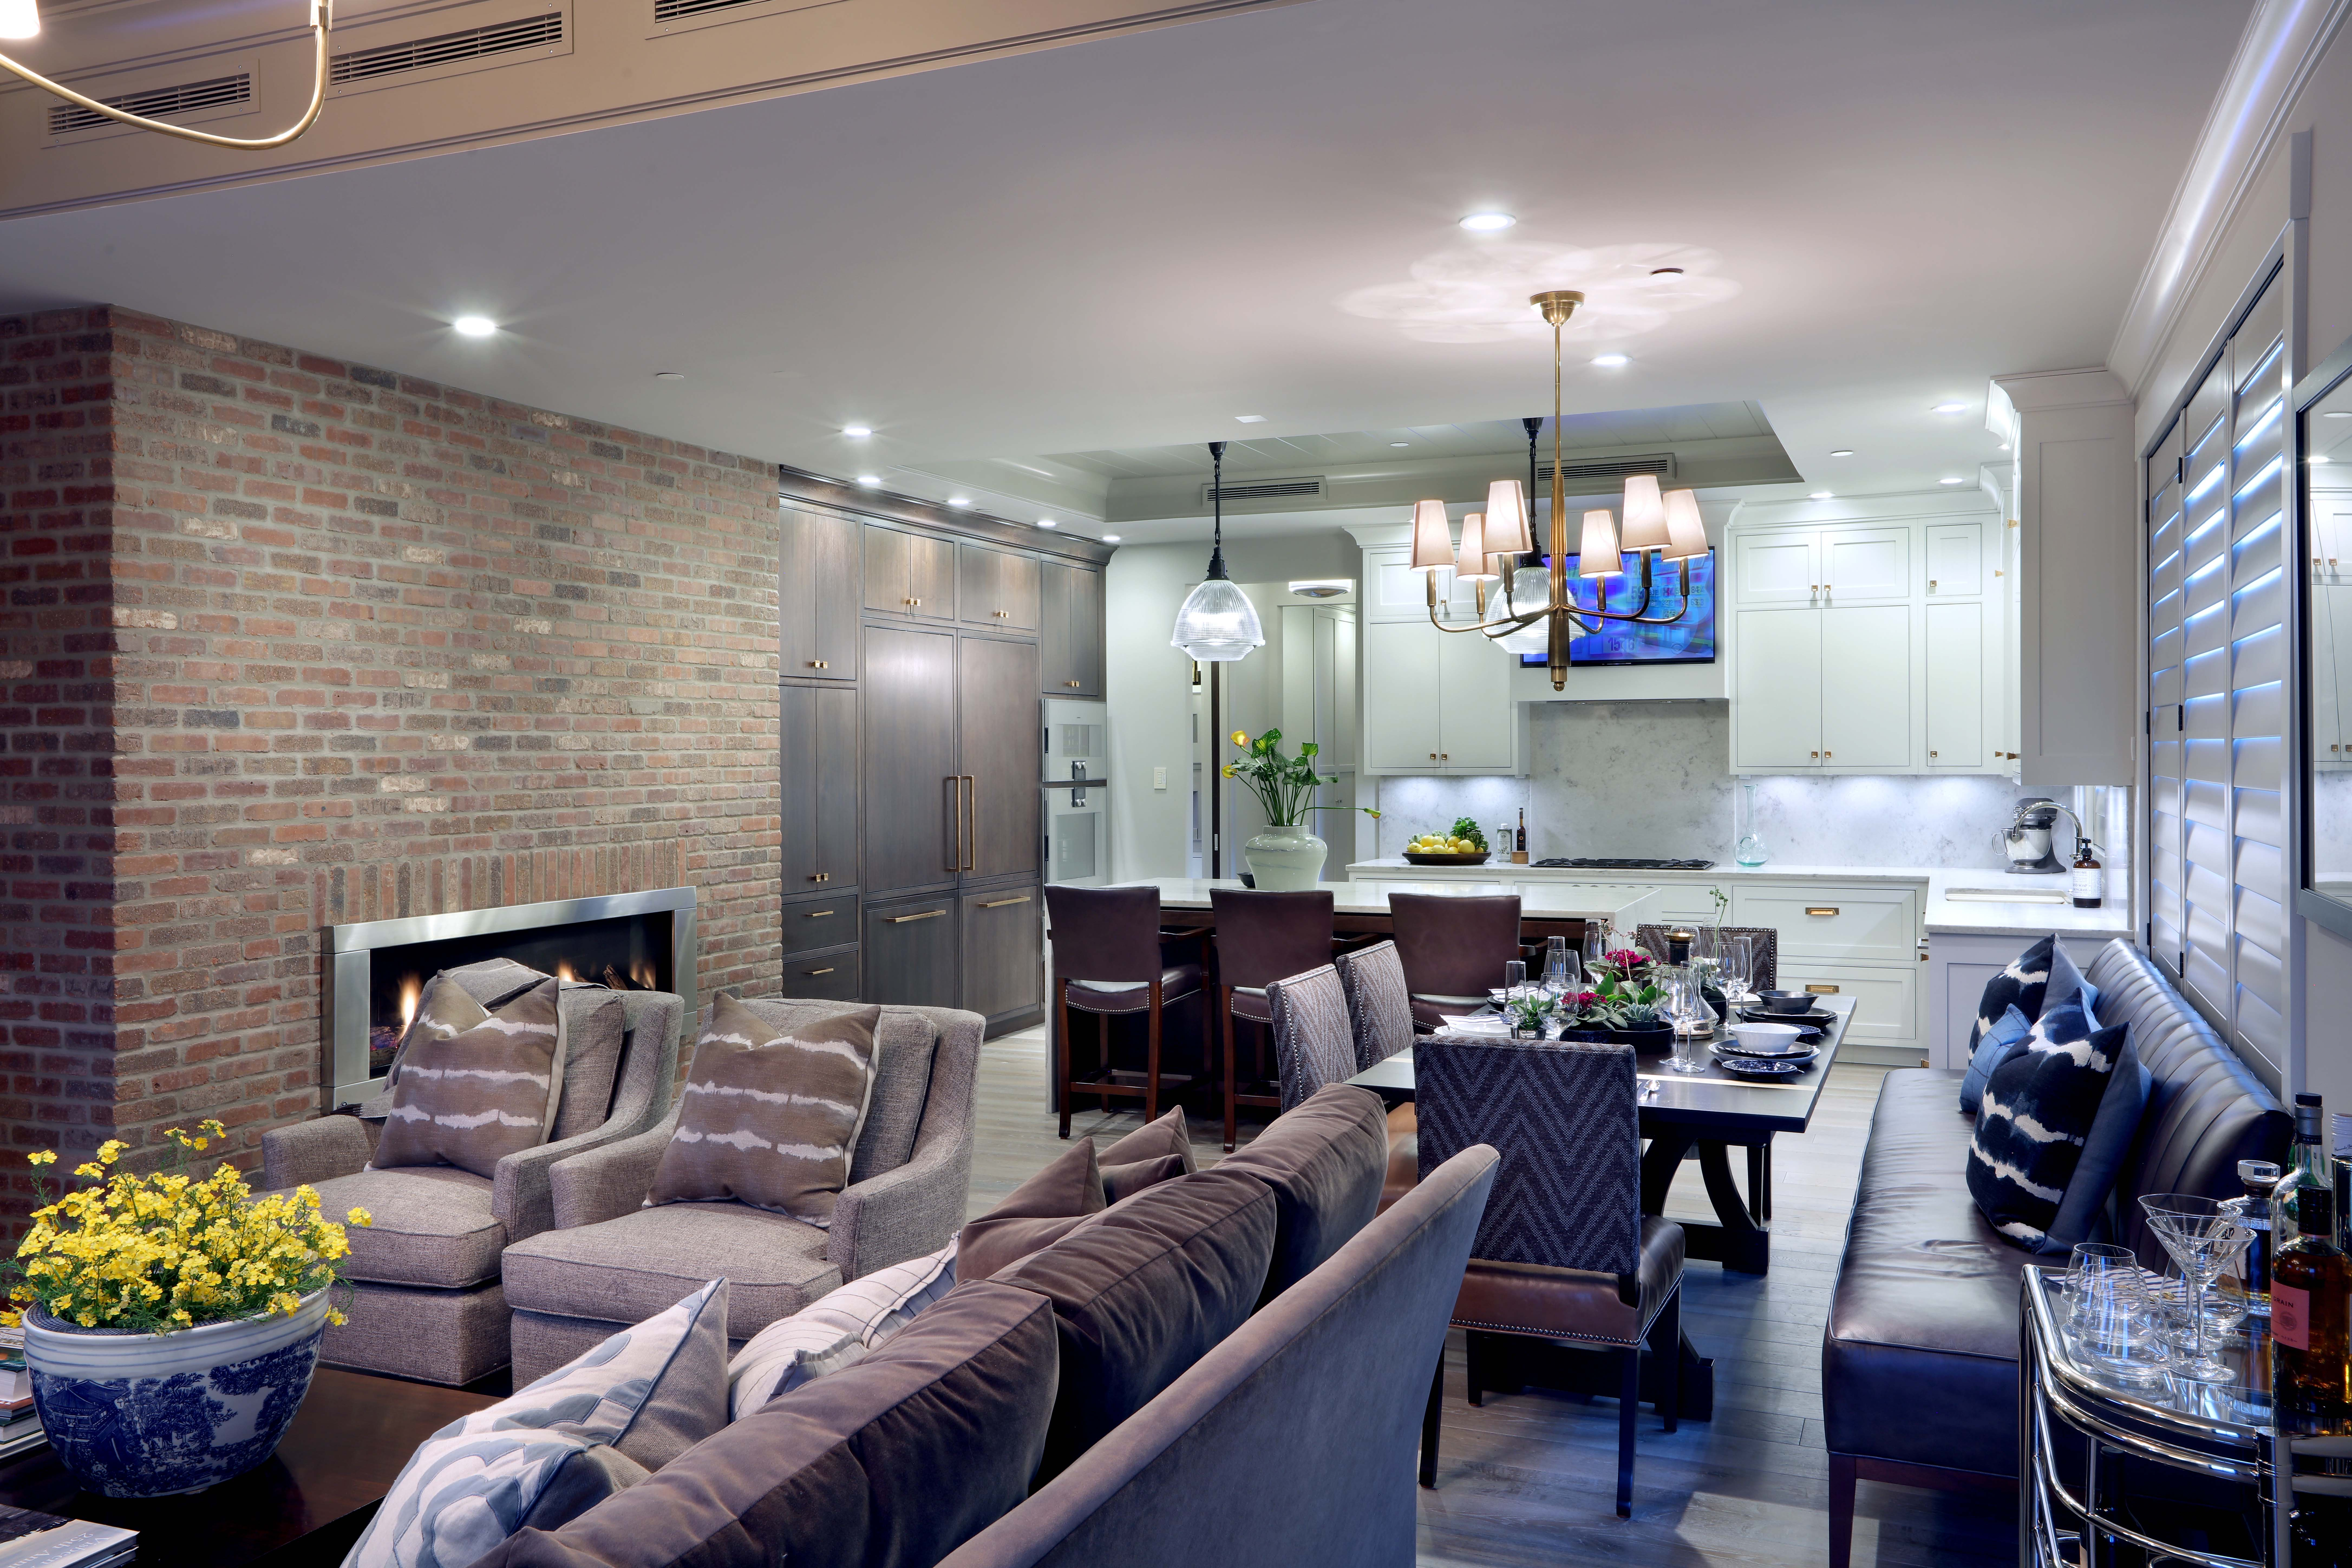 The Visbeens' open-concept living space with eat-in kitchen and Napoleon Vector gas fireplace makes efficient use of space without sacrificing the luxuries they desired.